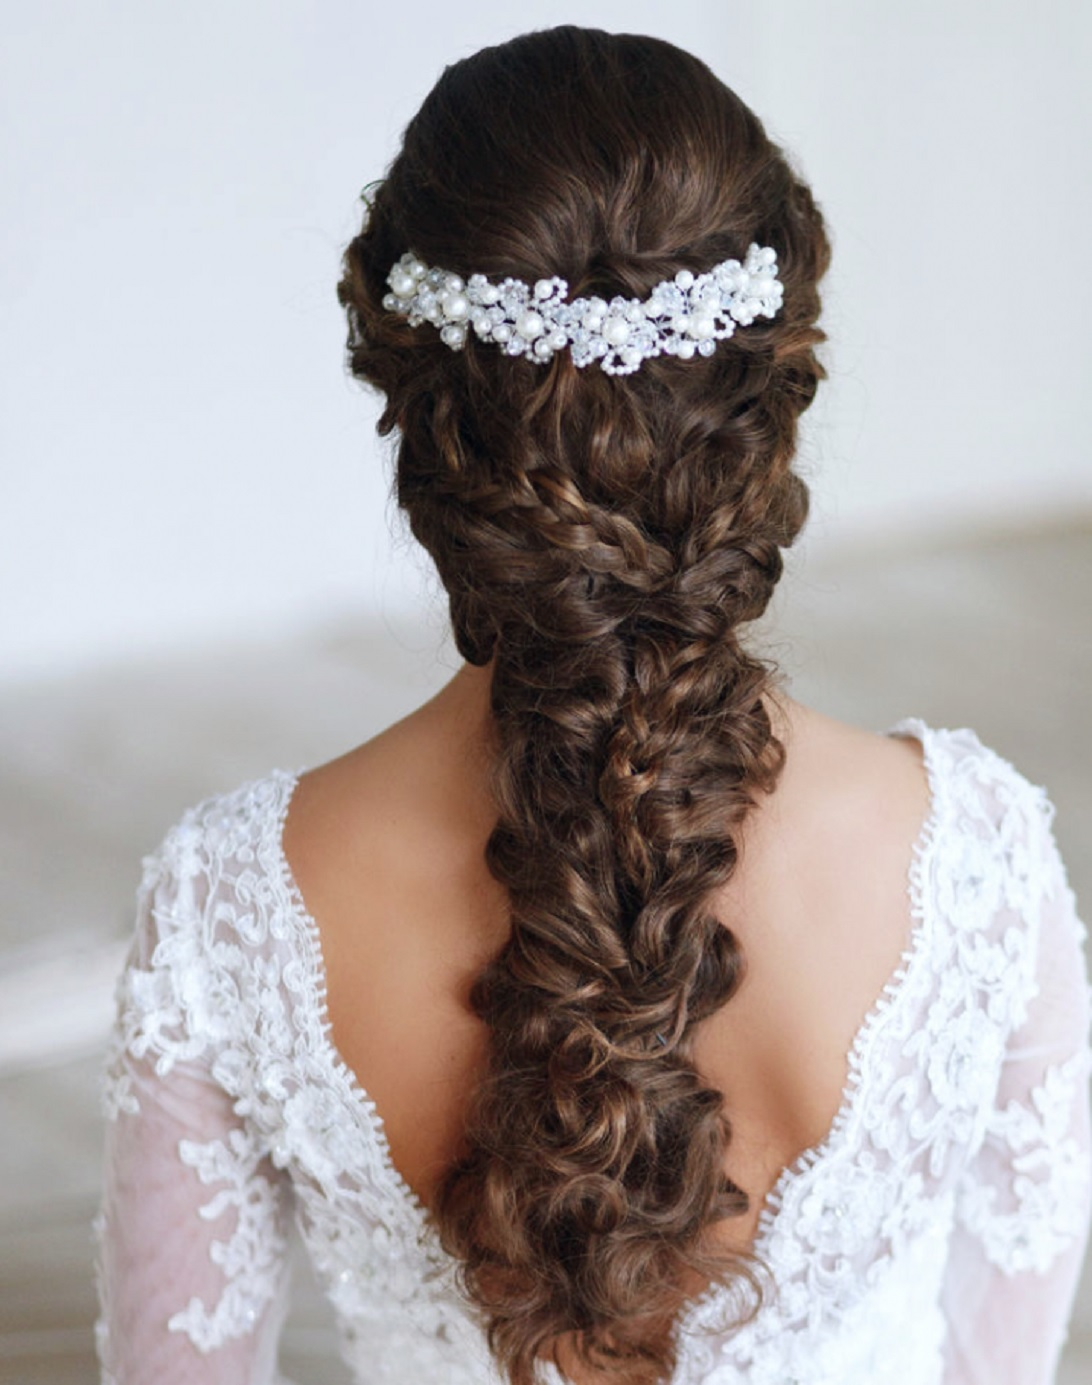 Wedding Hair And Makeup Ct Jonathan Edwards Winery: 6 Bridal Hairstyle Tips For Your Big Day